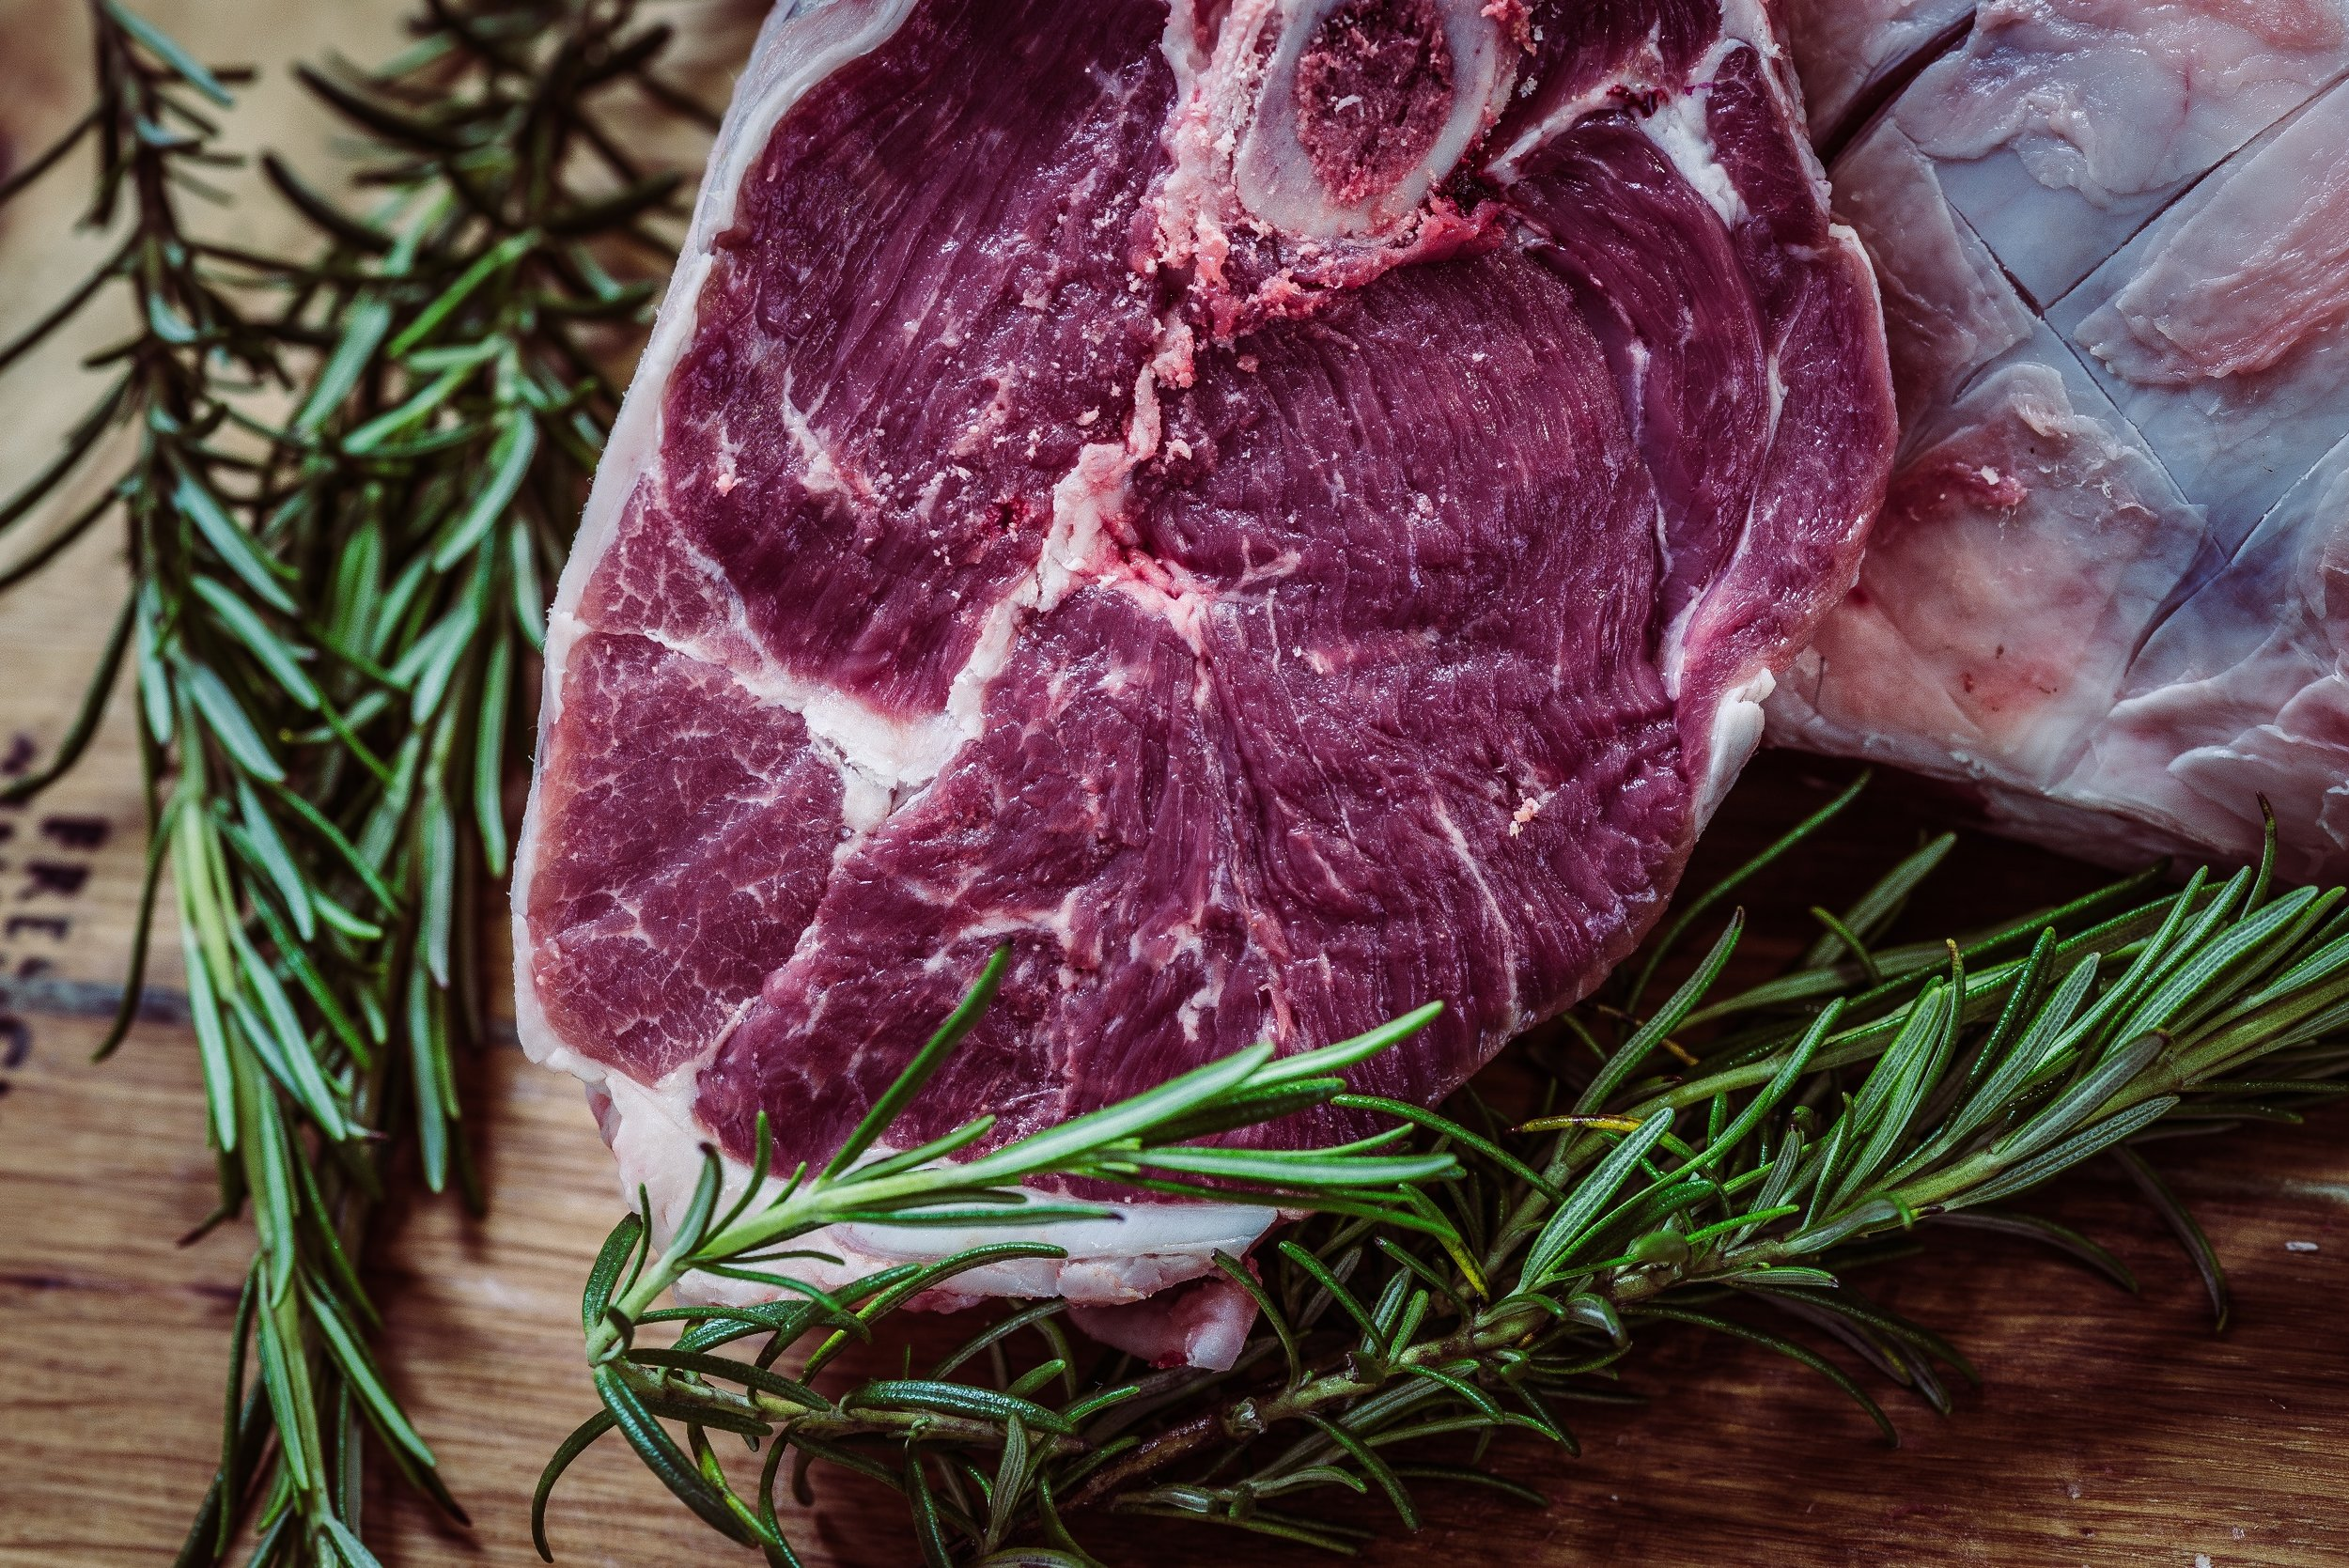 Beef and rosemary with blackberries - a match made in heaven!